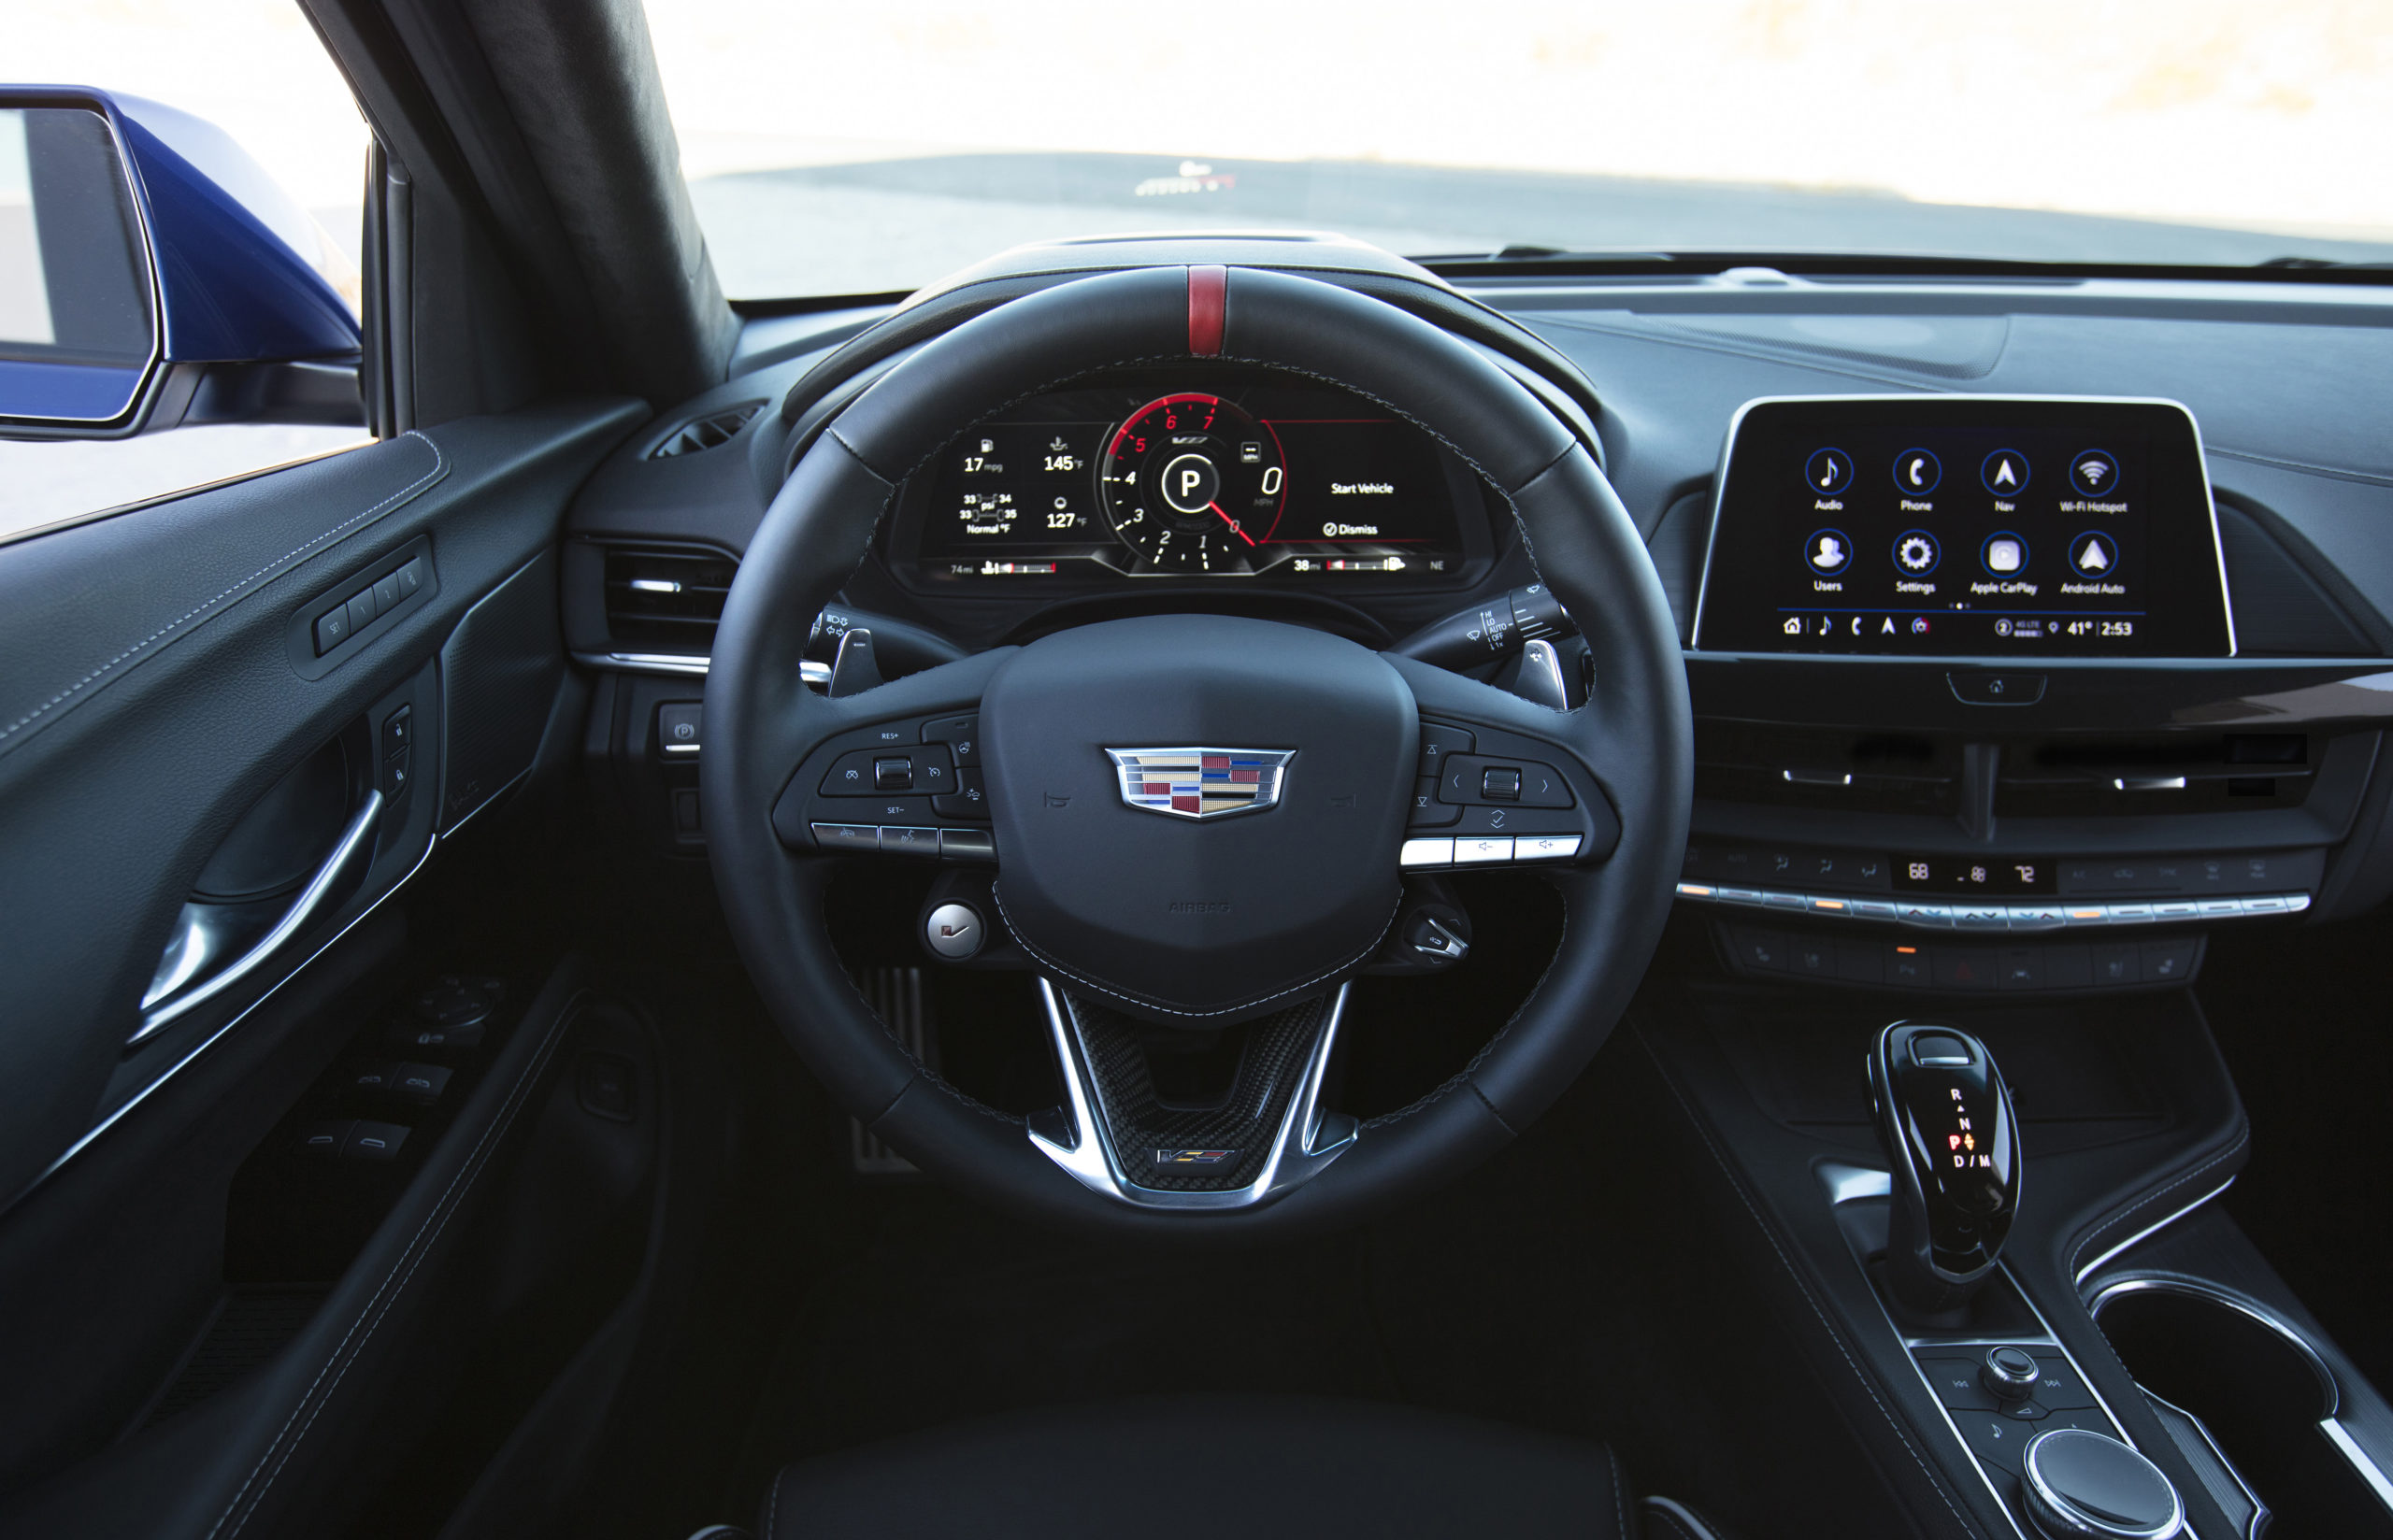 2022 Cadillac CT4-V Blackwing steering wheel and dashboard